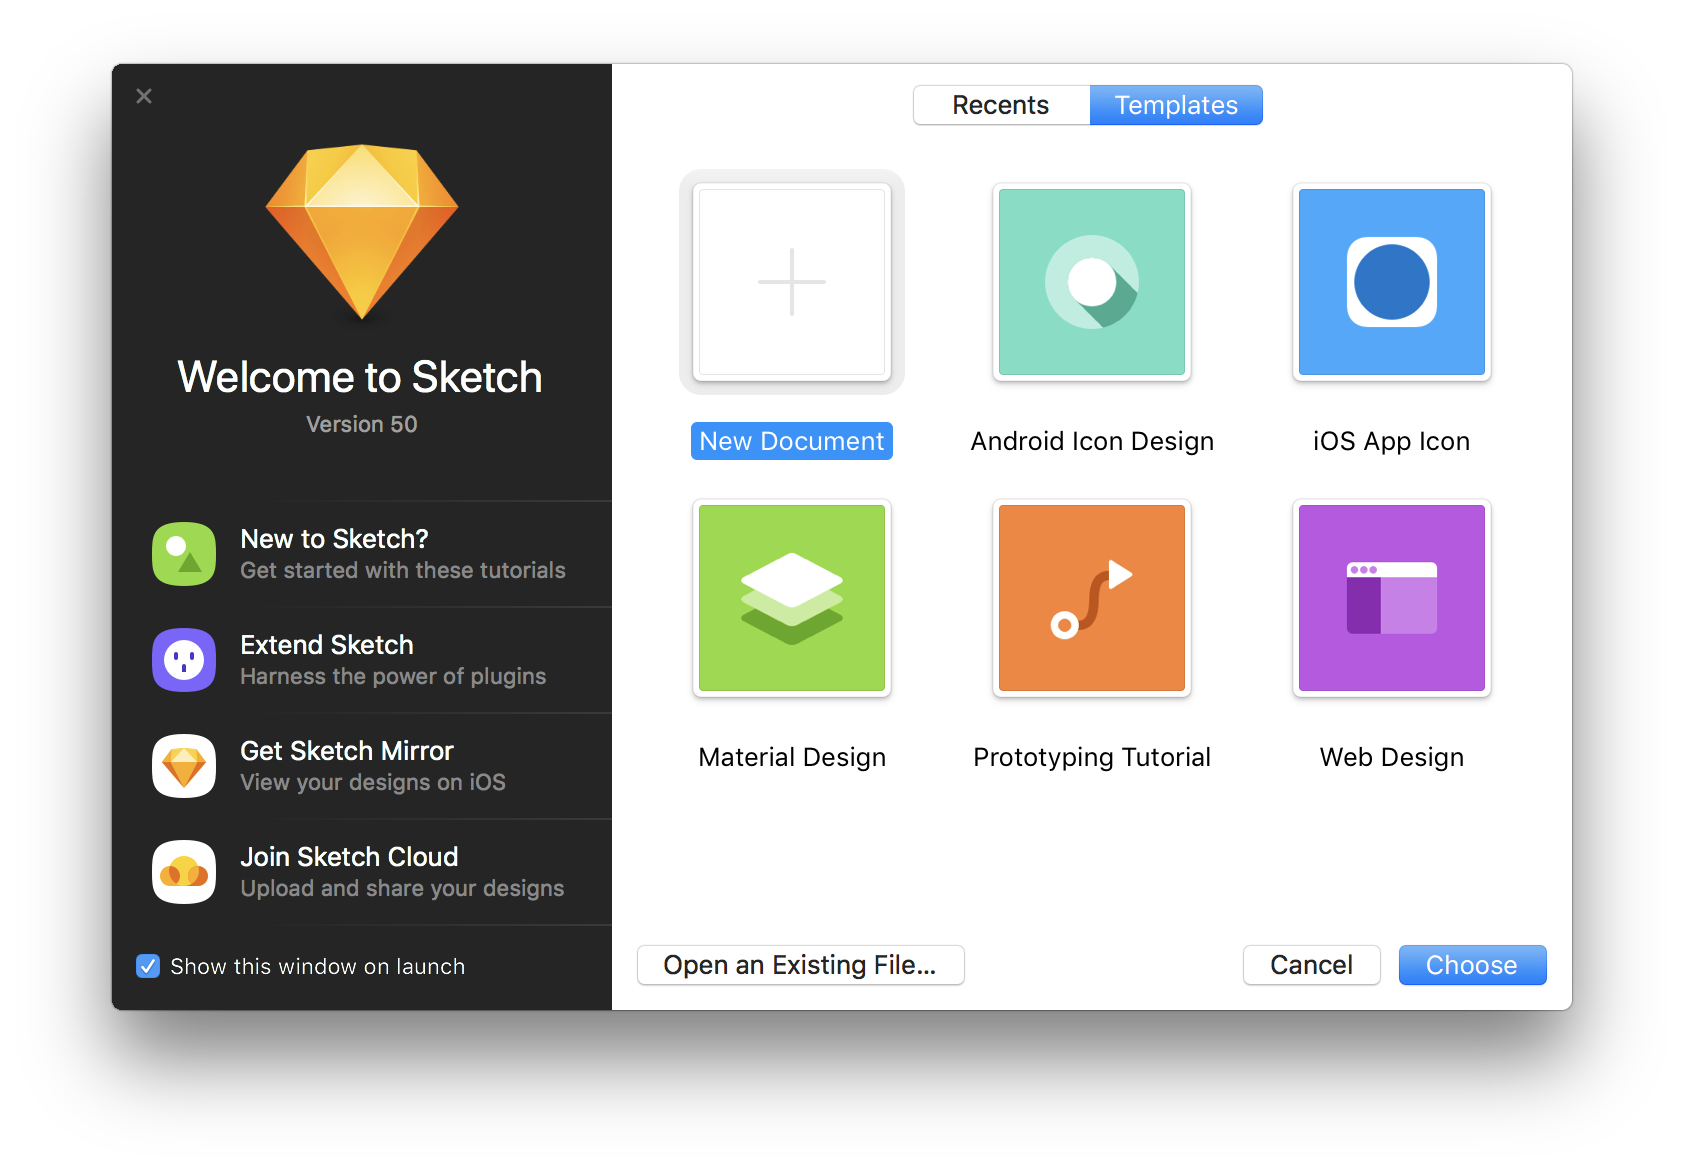 A screenshot of Sketch's welcome modal